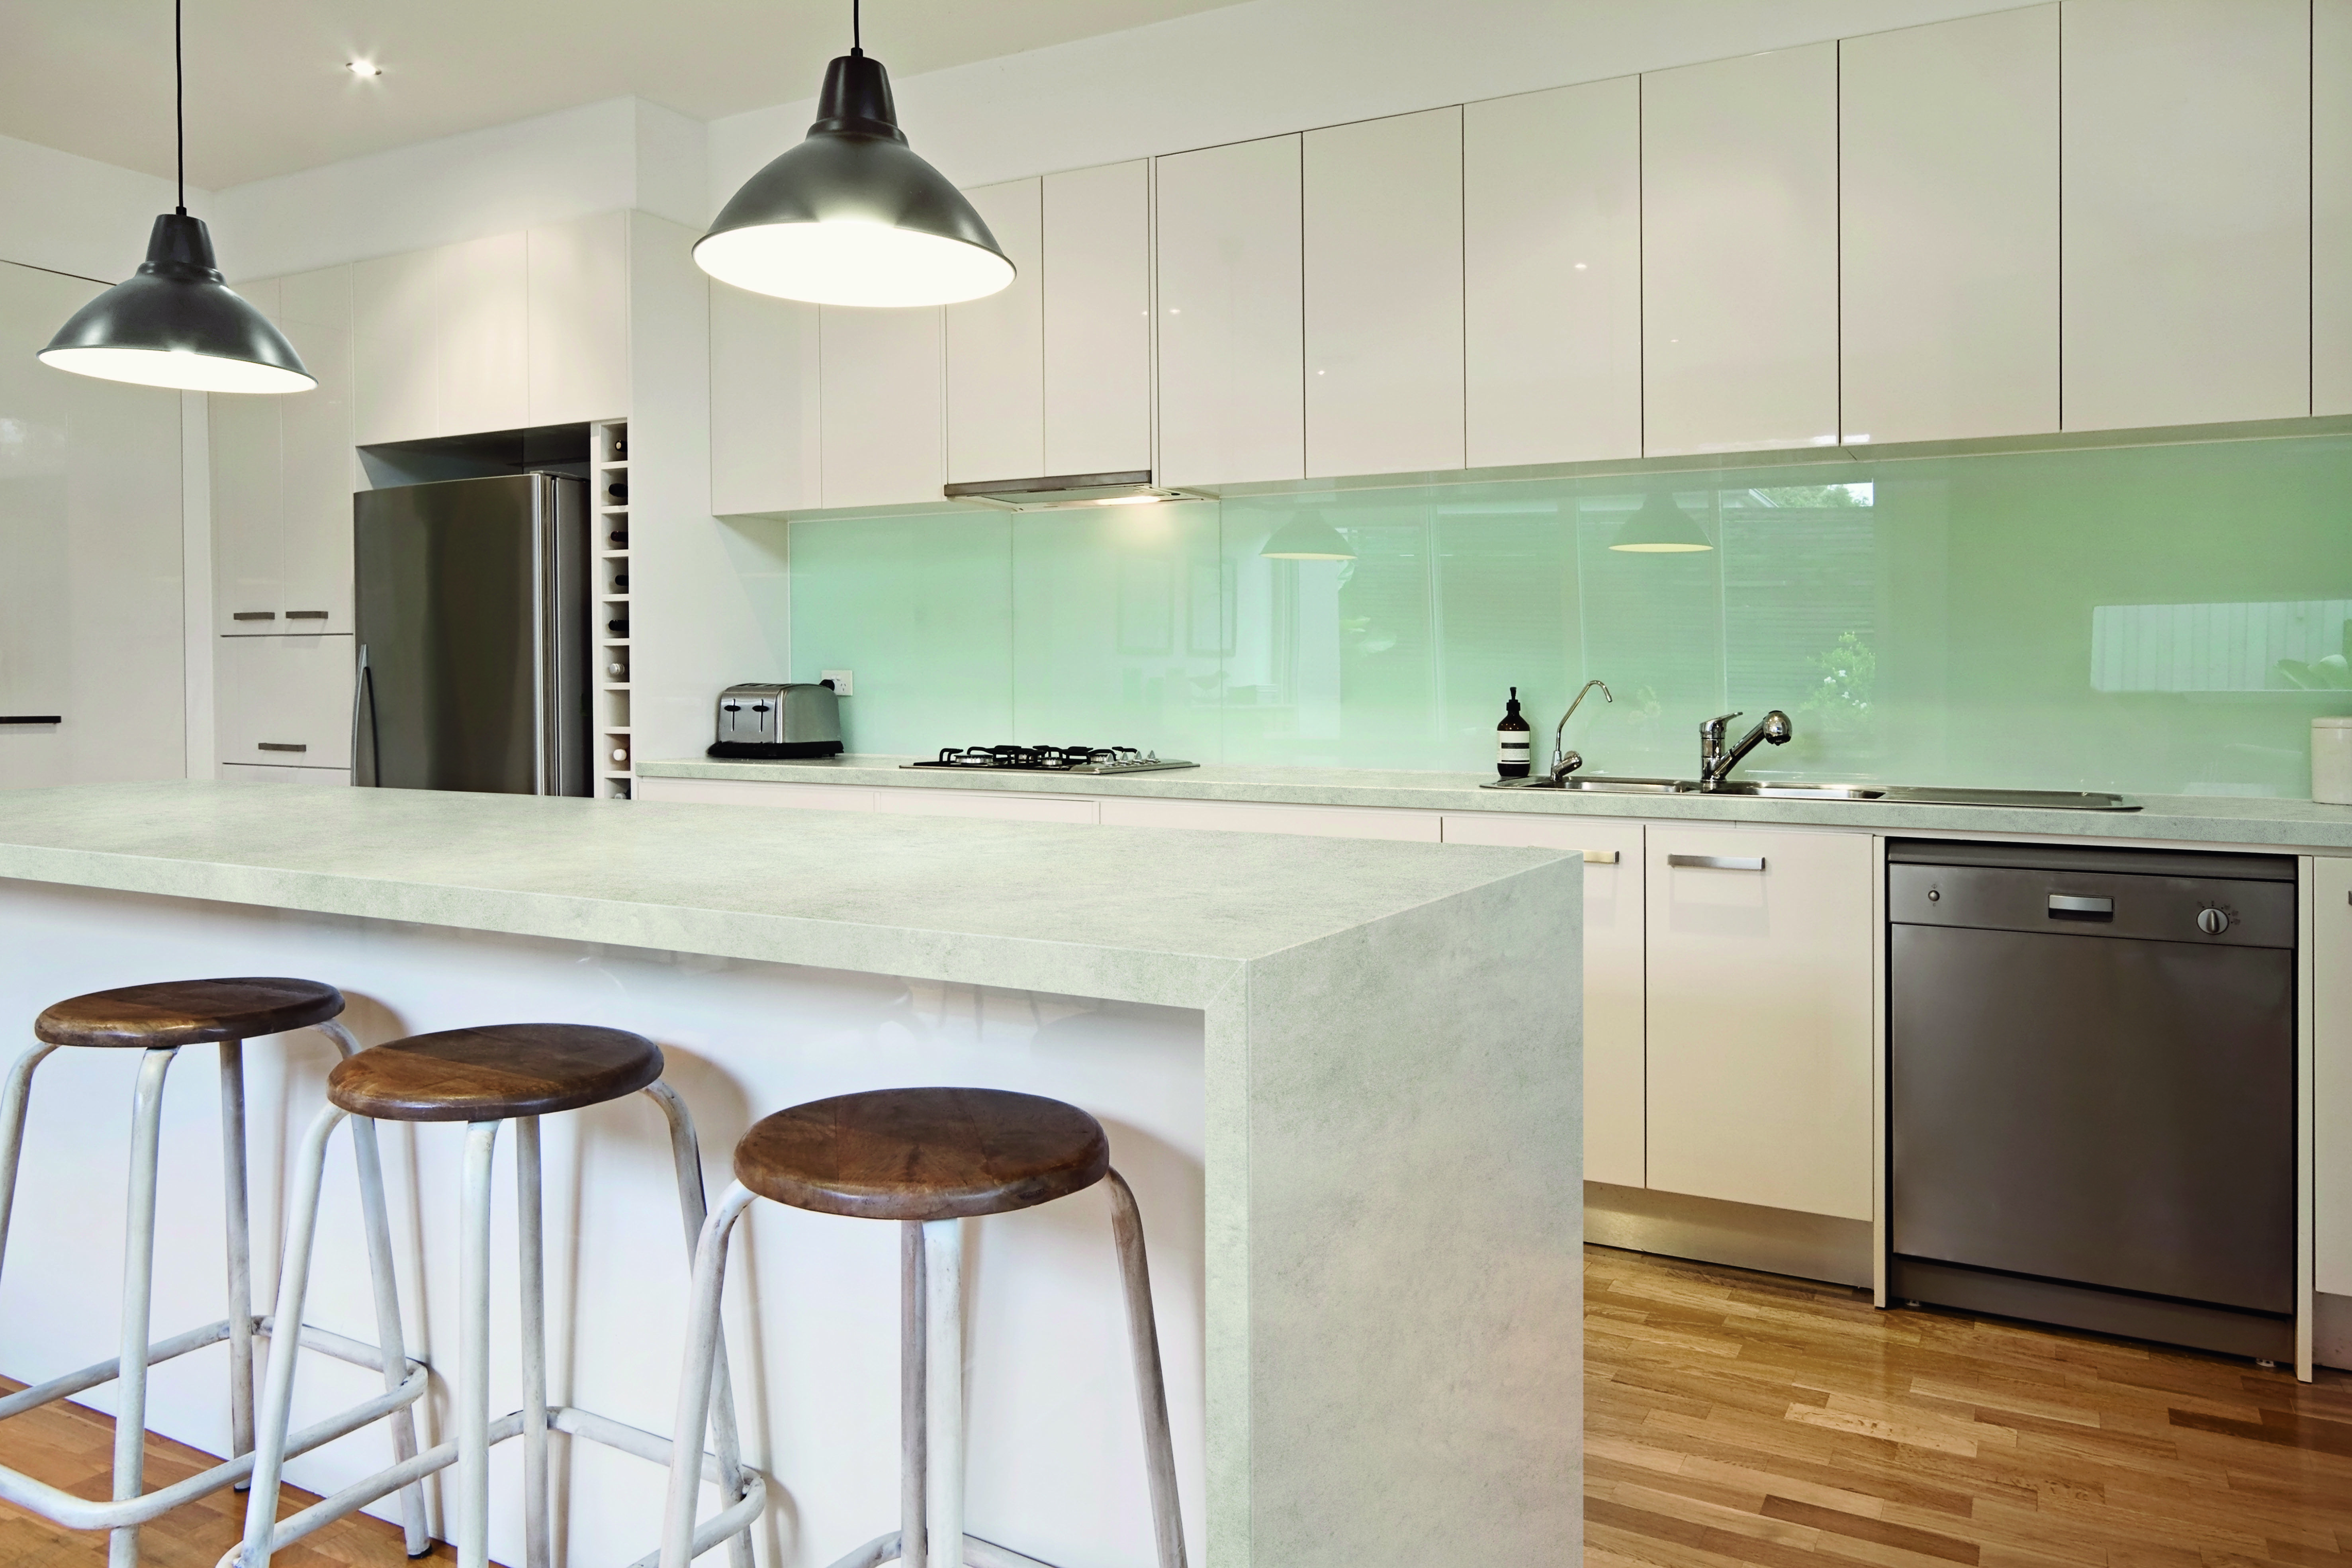 Encimera Techlam Hydra Collection // Countertop made of Techlam ...